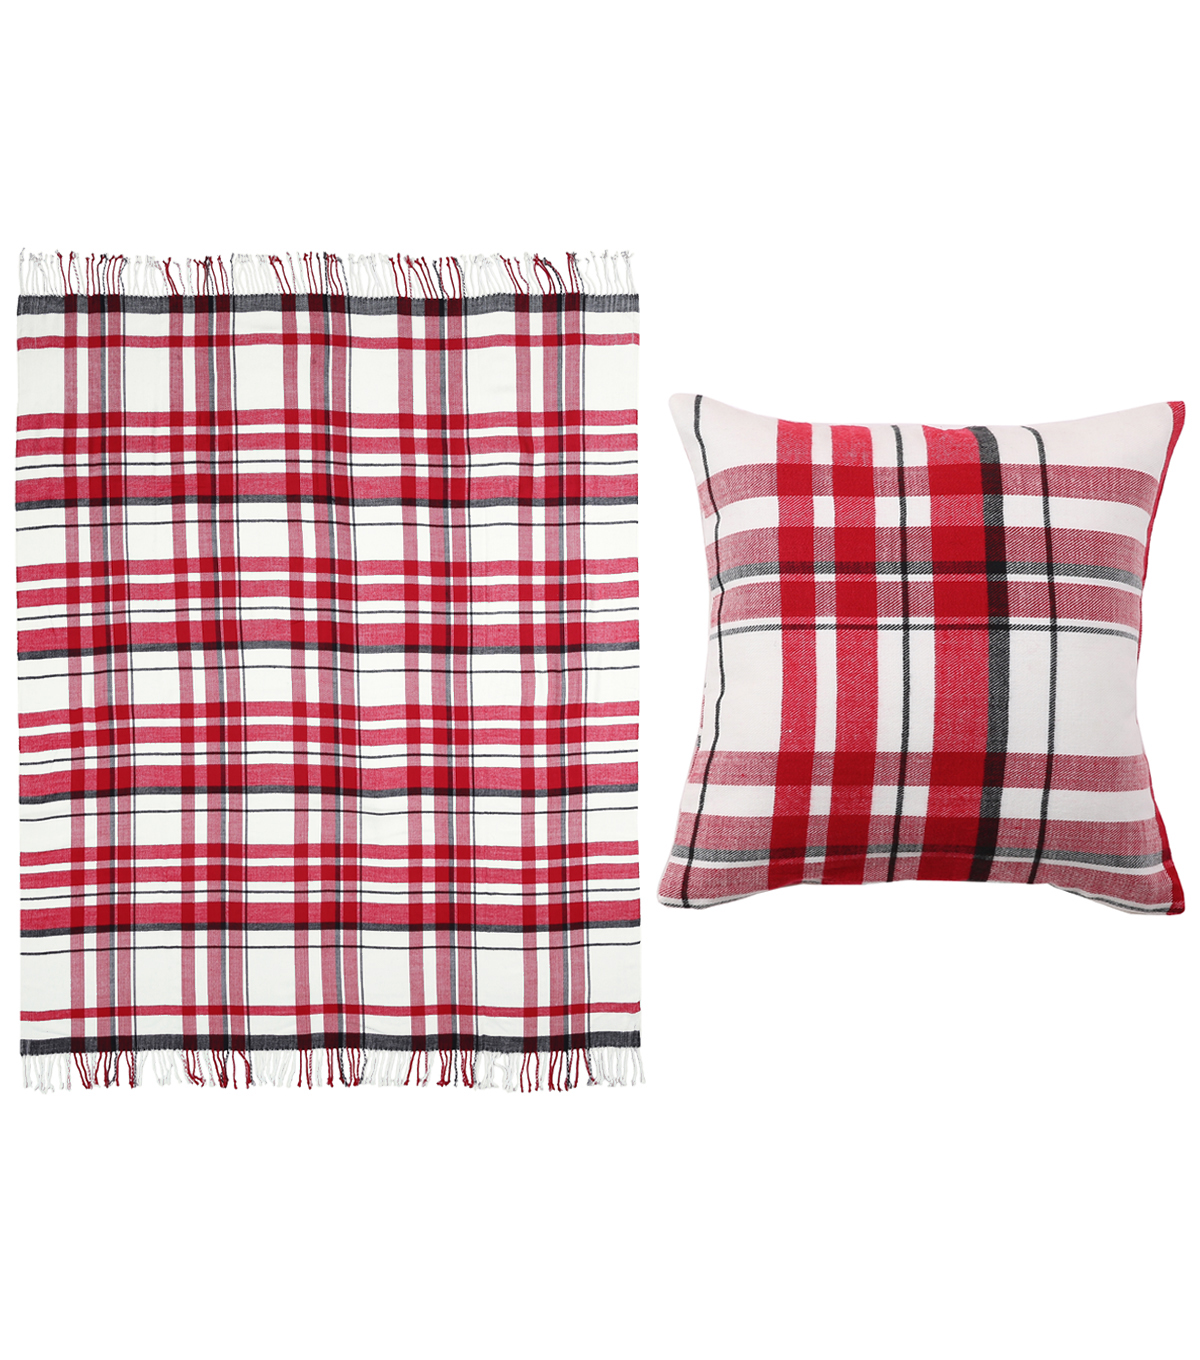 Maker\u0027s Holiday Christmas Throw & Pillow Set-Red & White Plaid